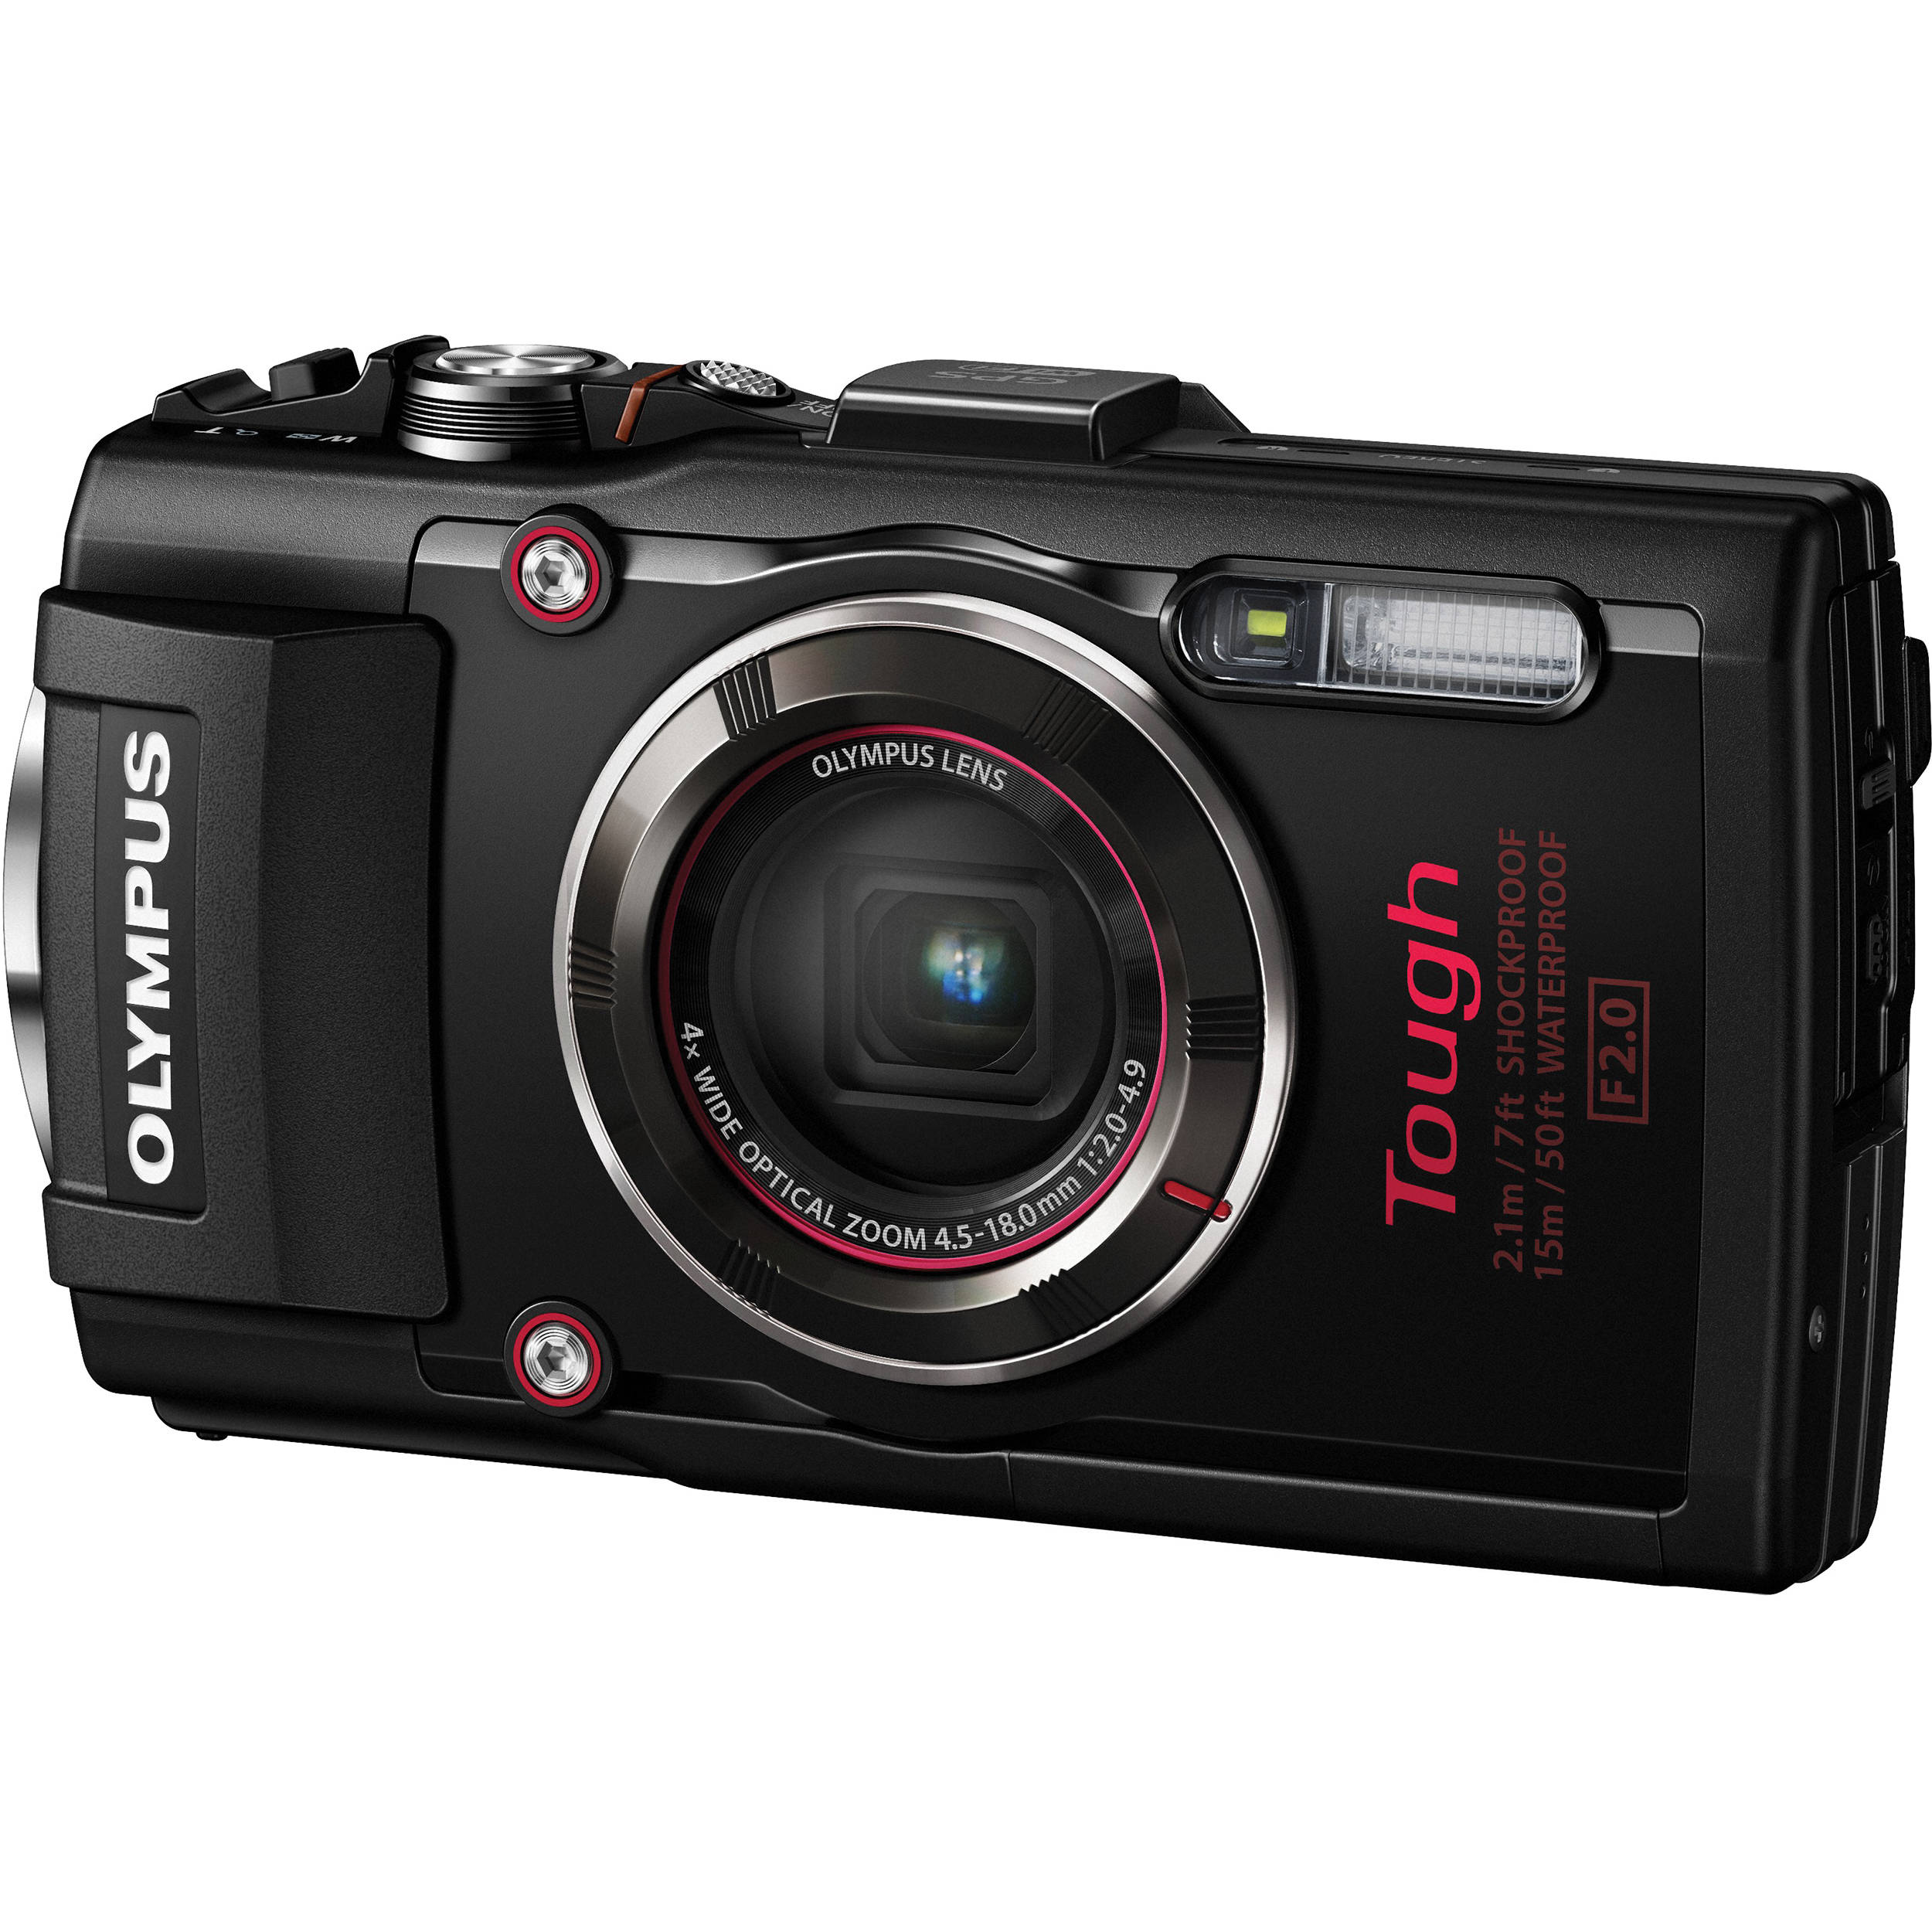 Olympus Digital Camera: Olympus Stylus TOUGH TG-4 Digital Camera (Black) V104160BU000